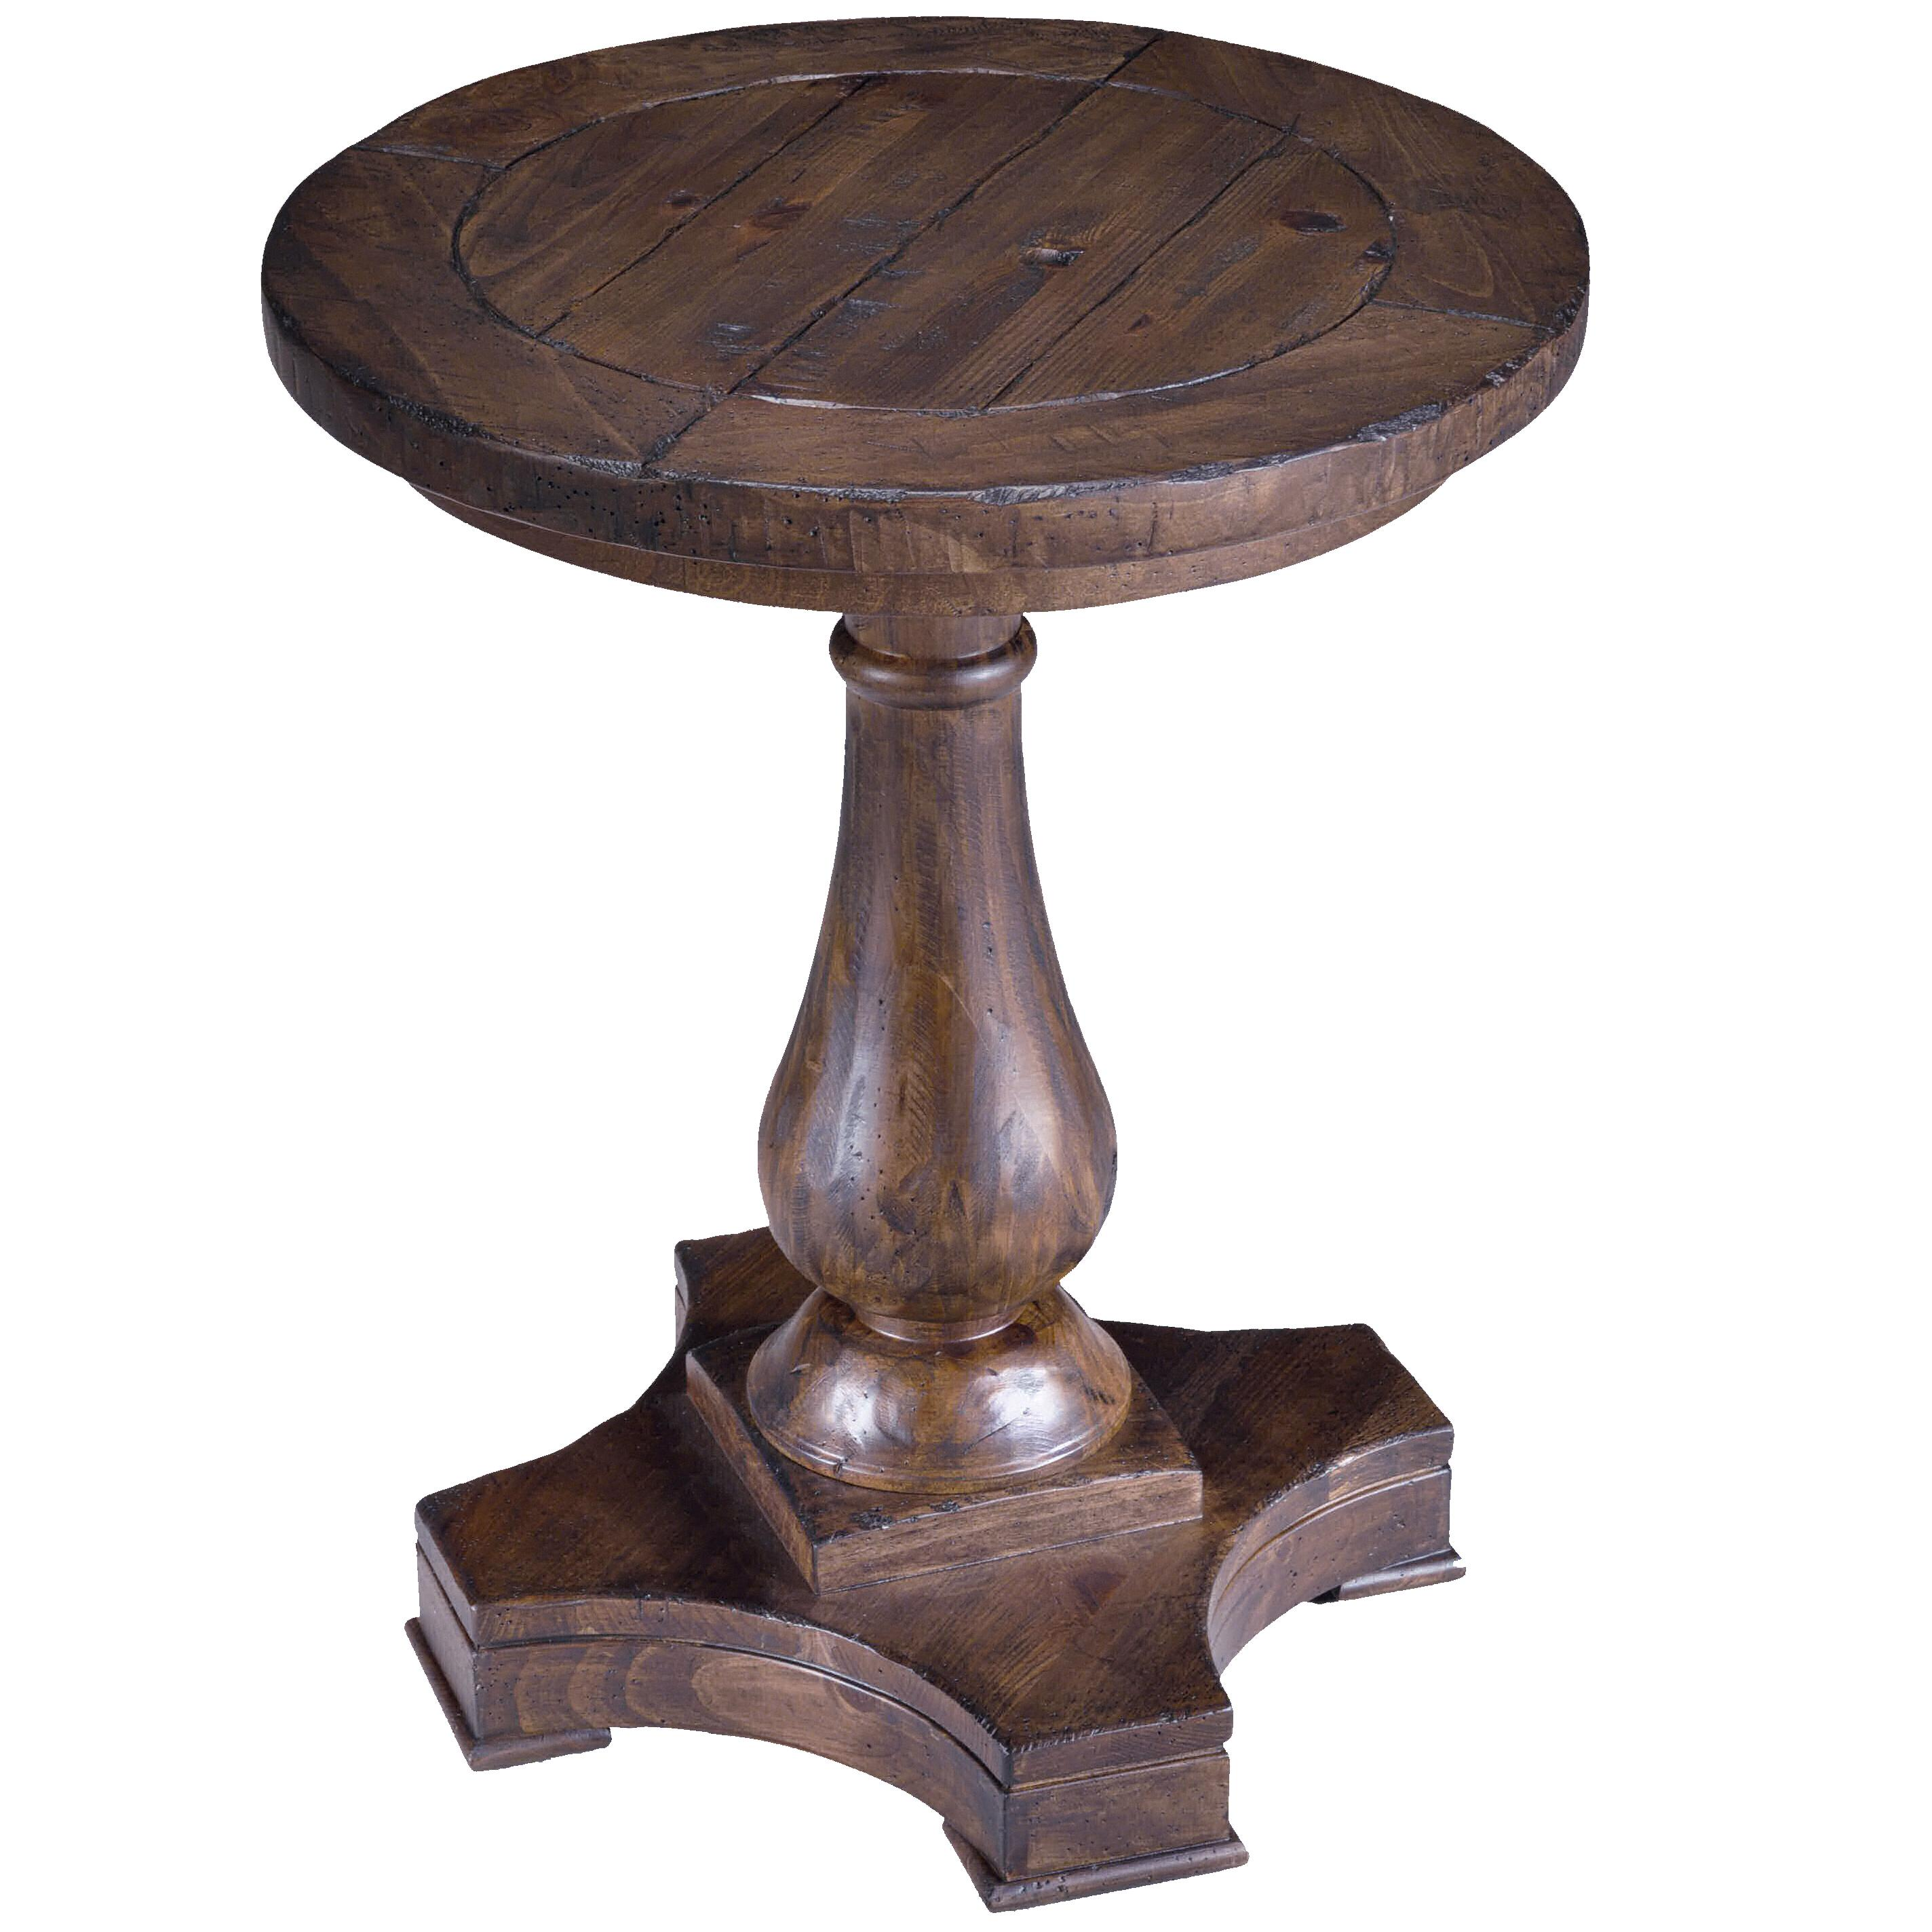 Densbury Round Accent End Table by Magnussen Home at Baer's Furniture